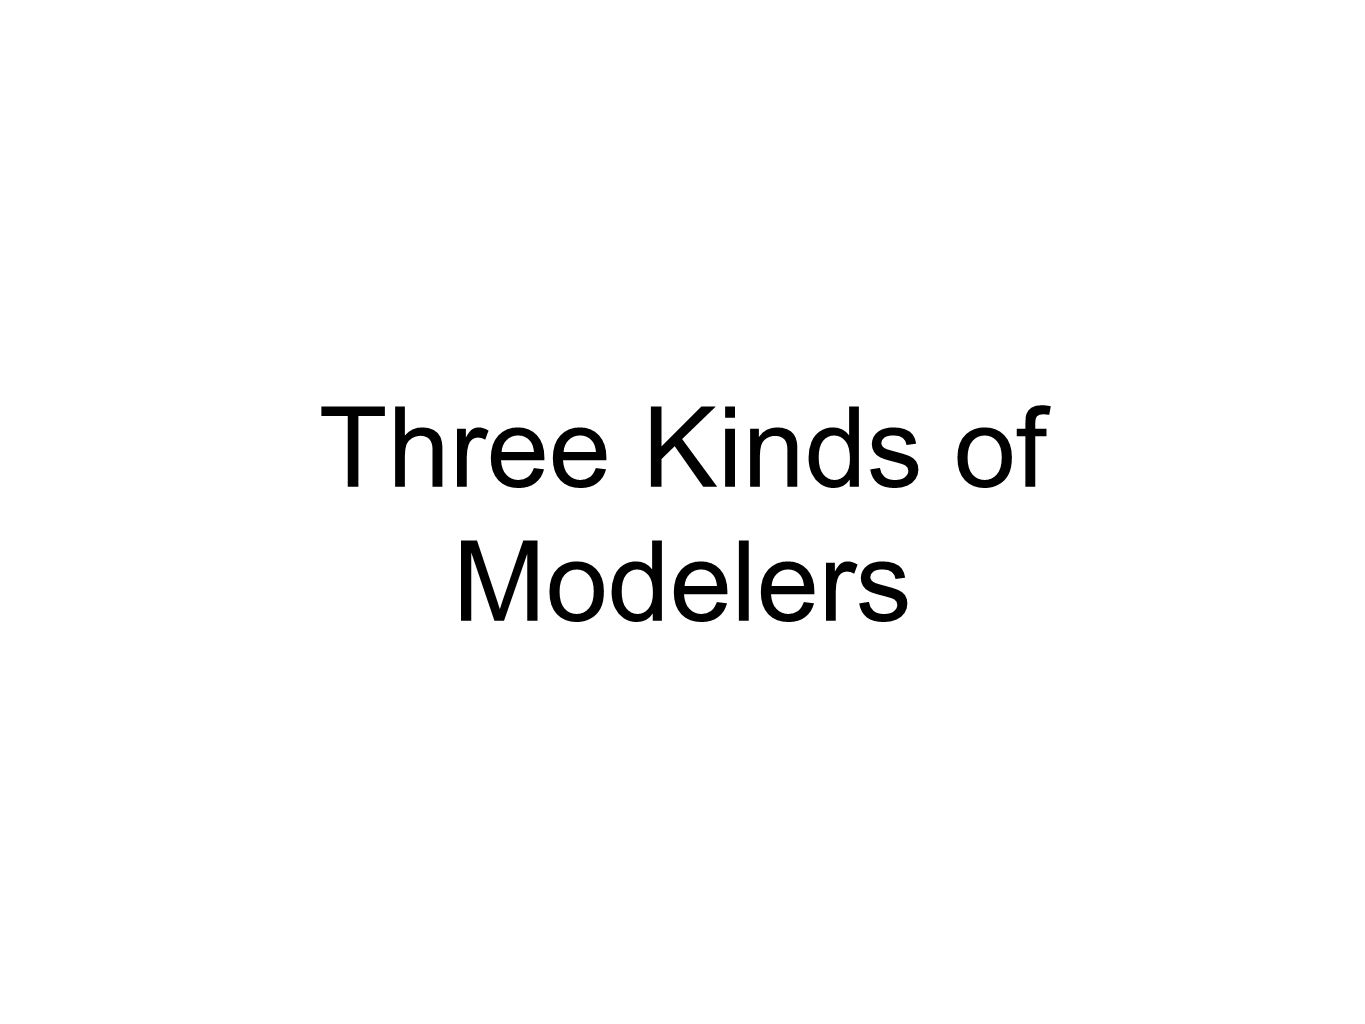 Three Kinds of Modelers